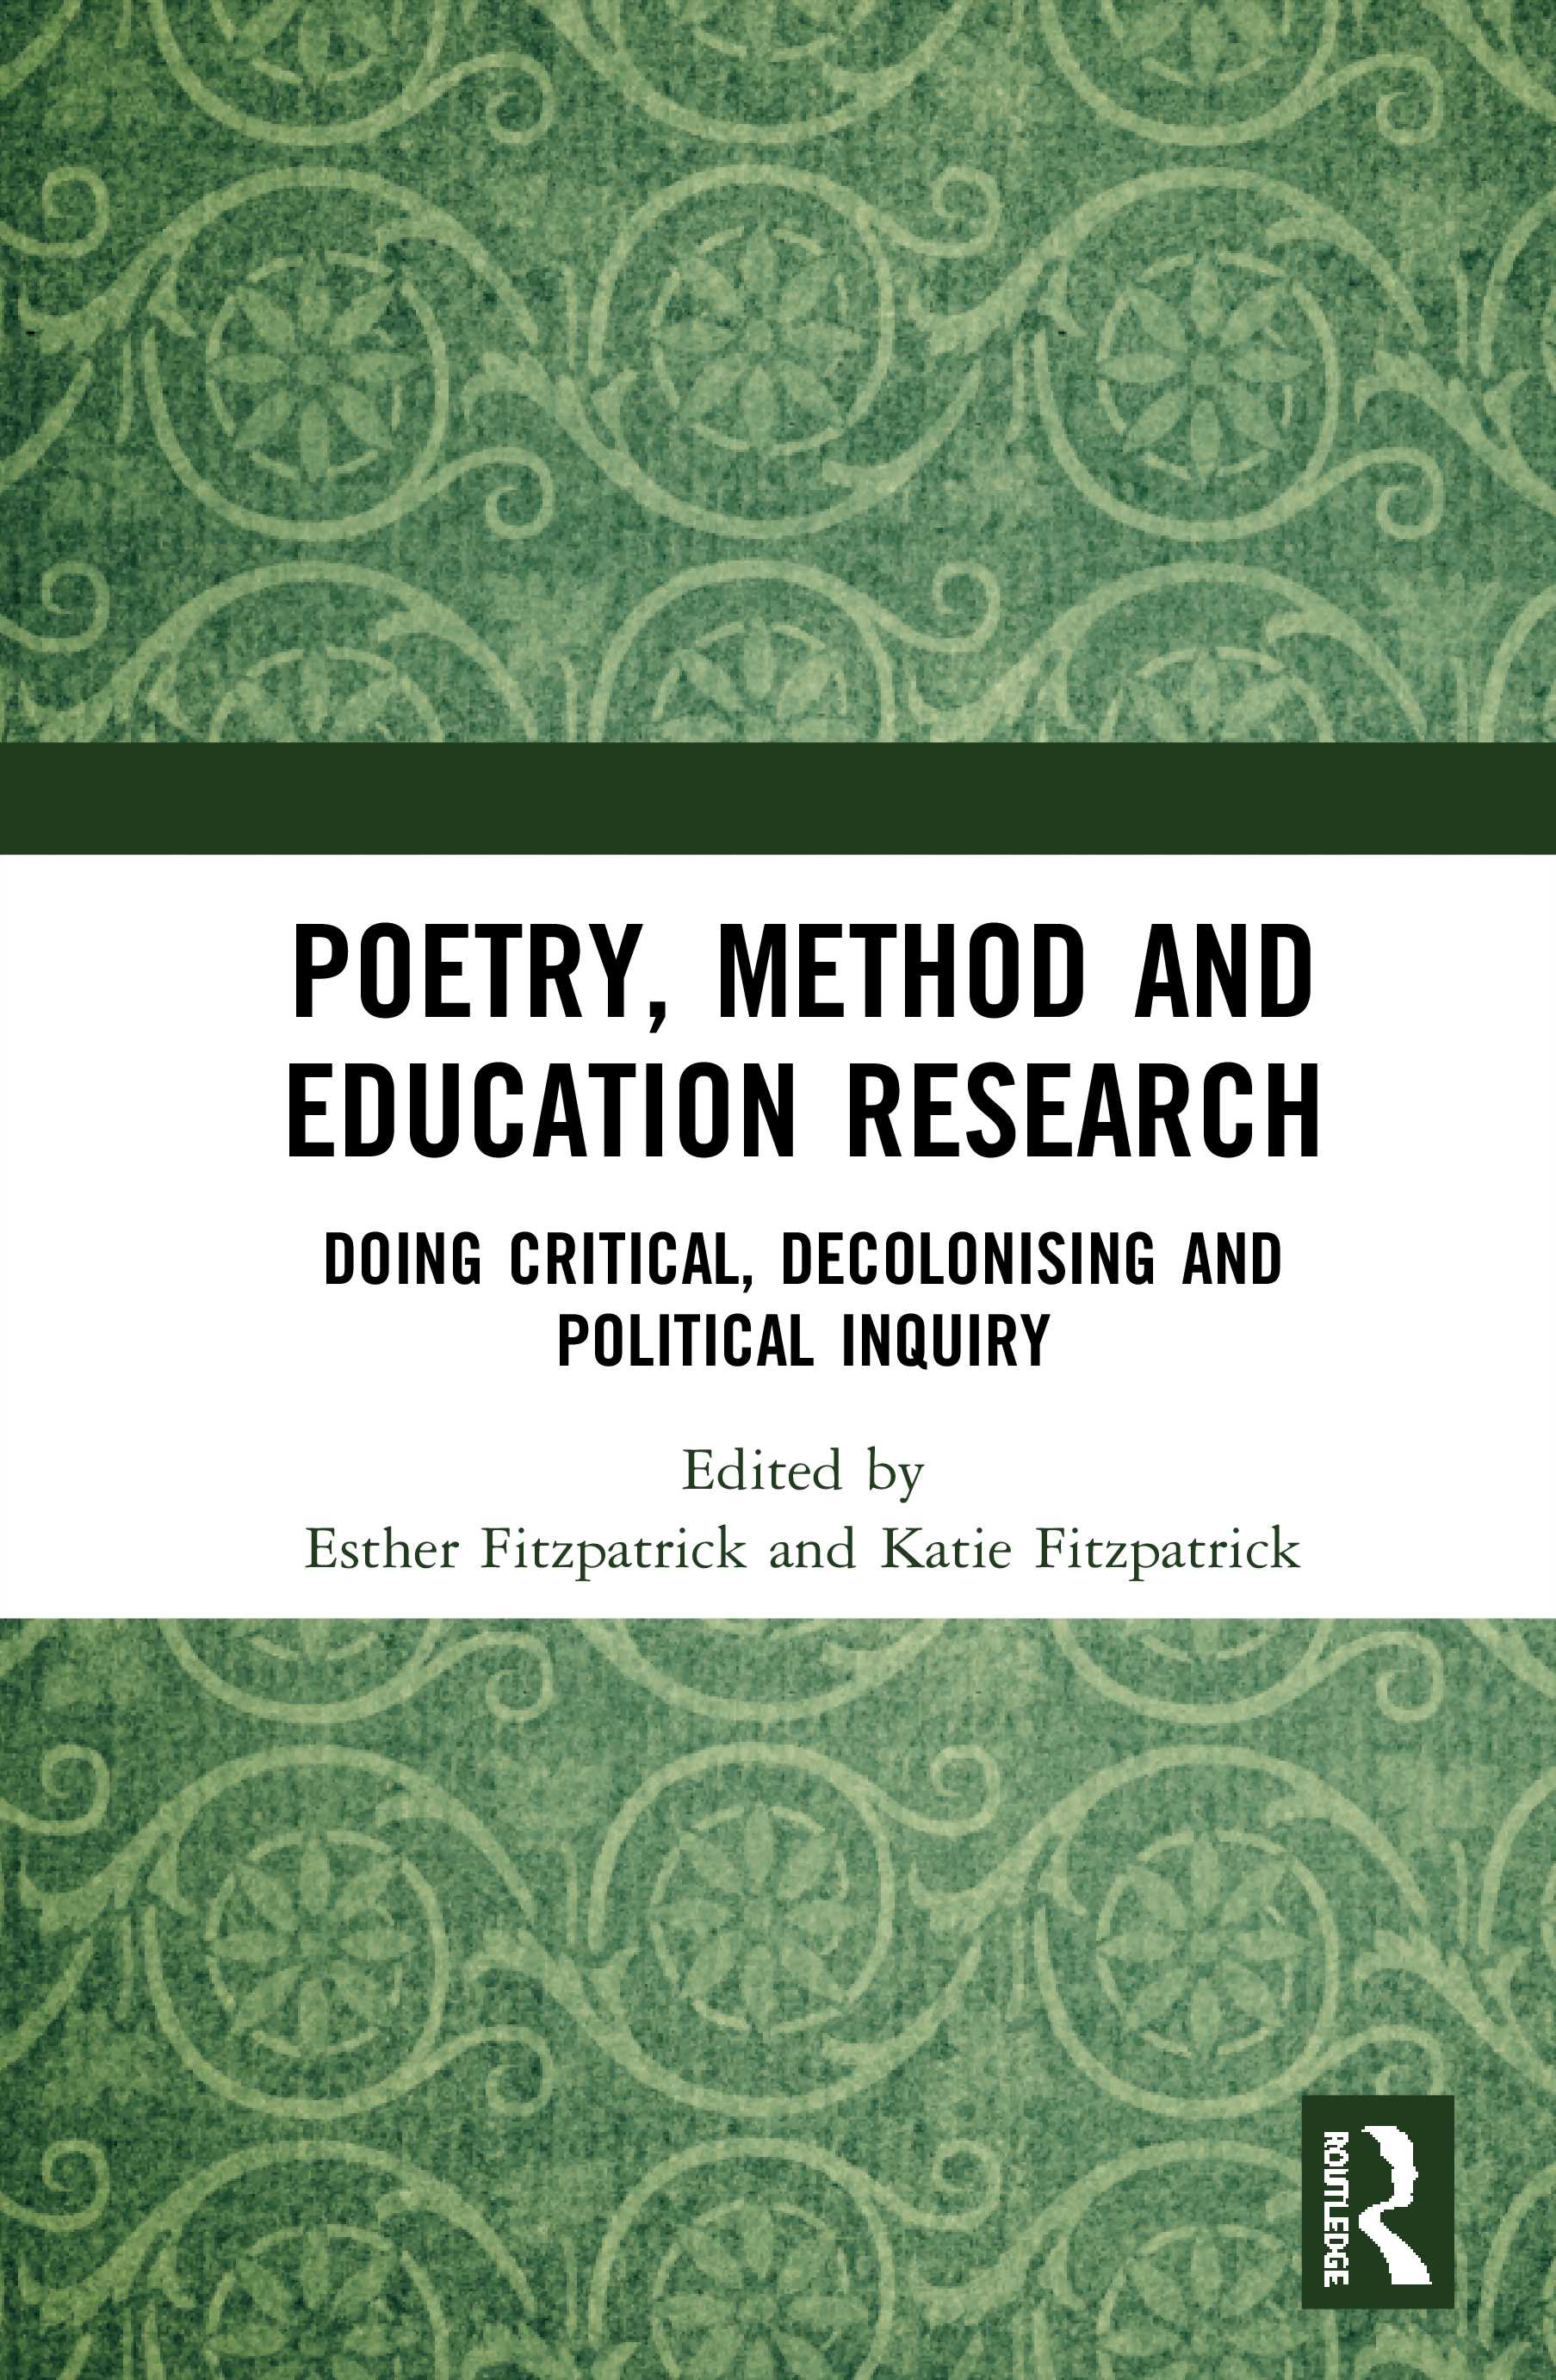 Poetry, Method and Education Research: Doing Critical, Decolonising and Political Inquiry book cover